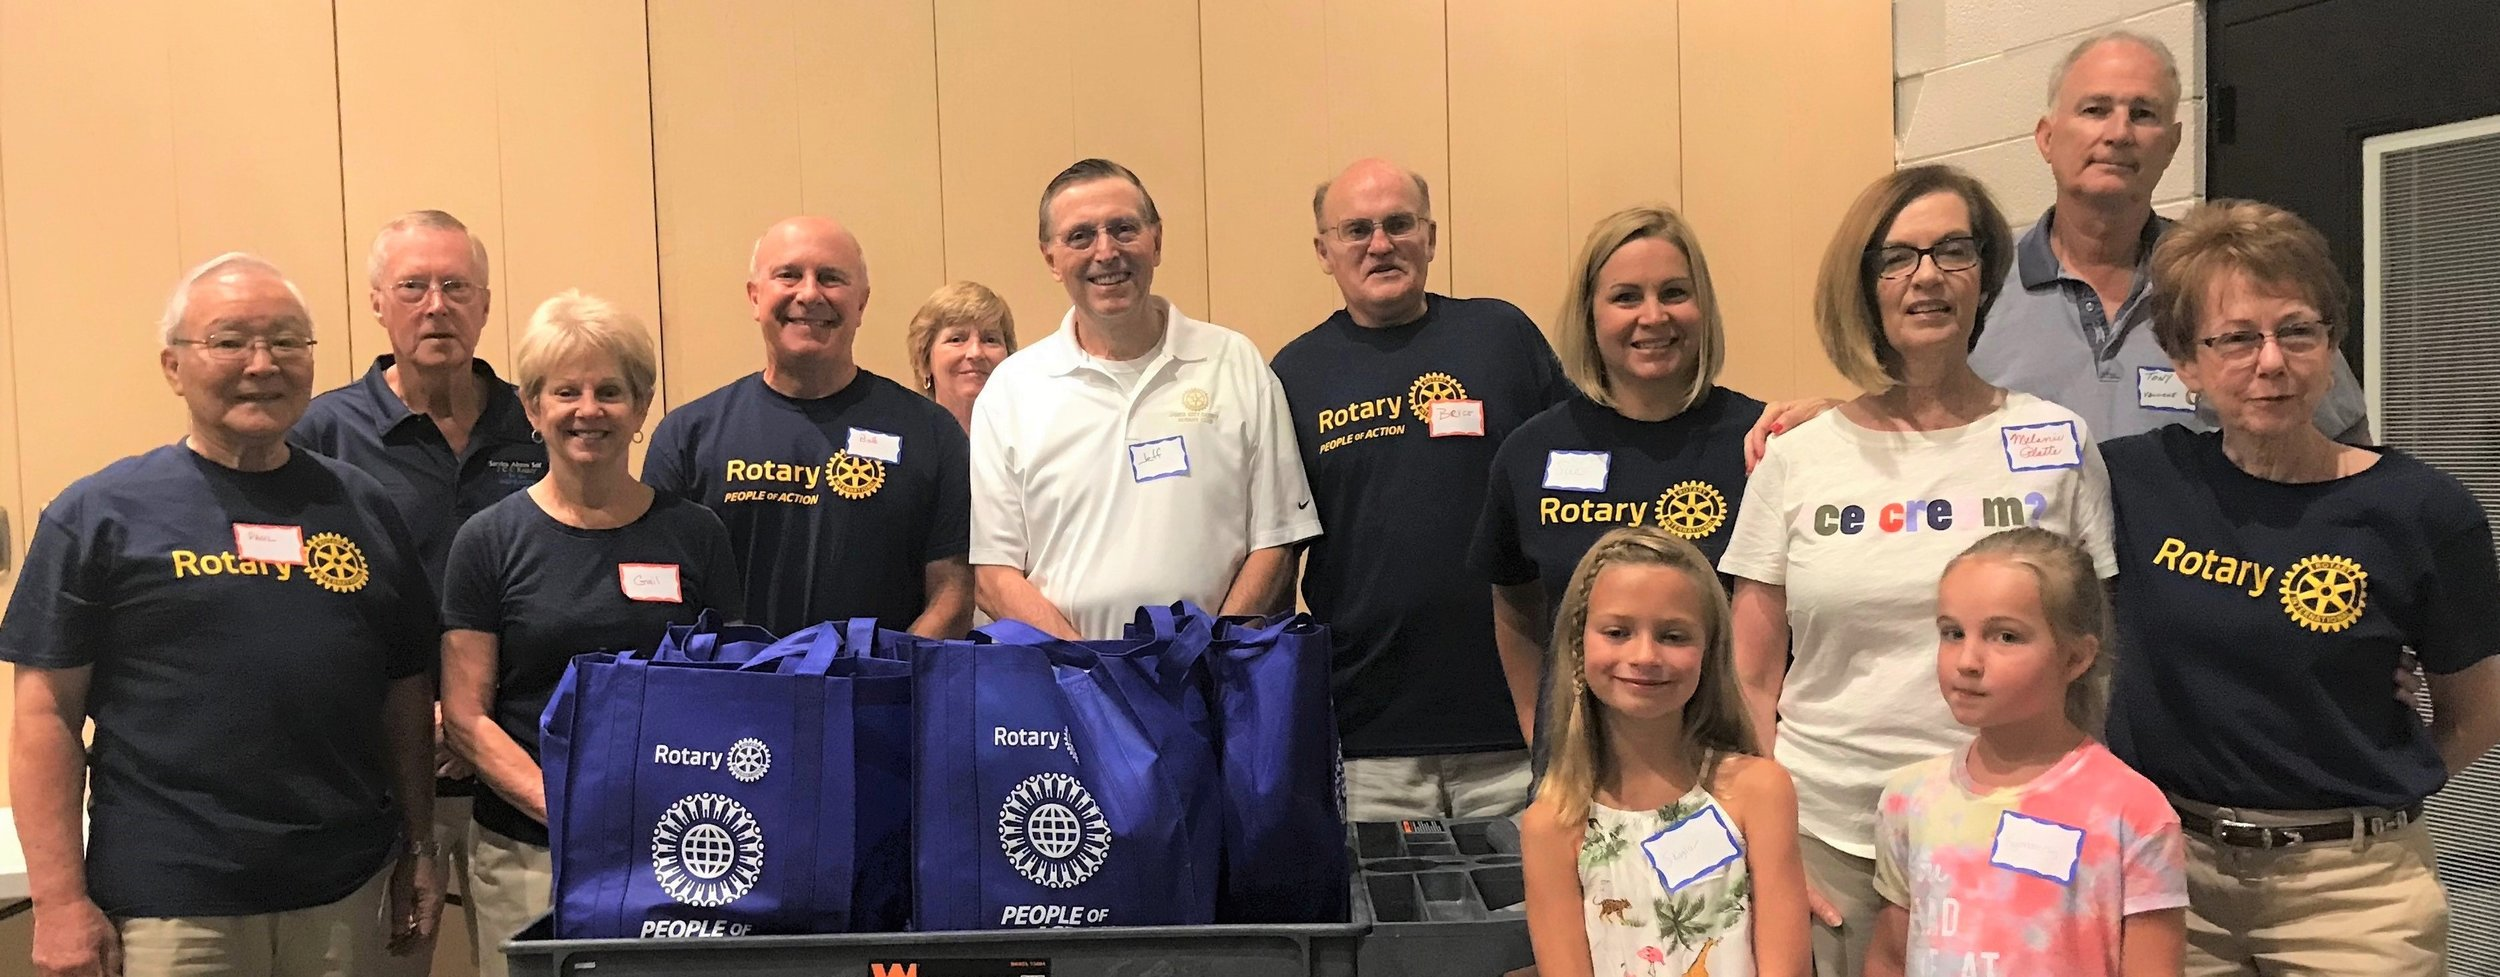 Many Rotarians helped at the Williamsburg House of Mercy food drive in August 2019.